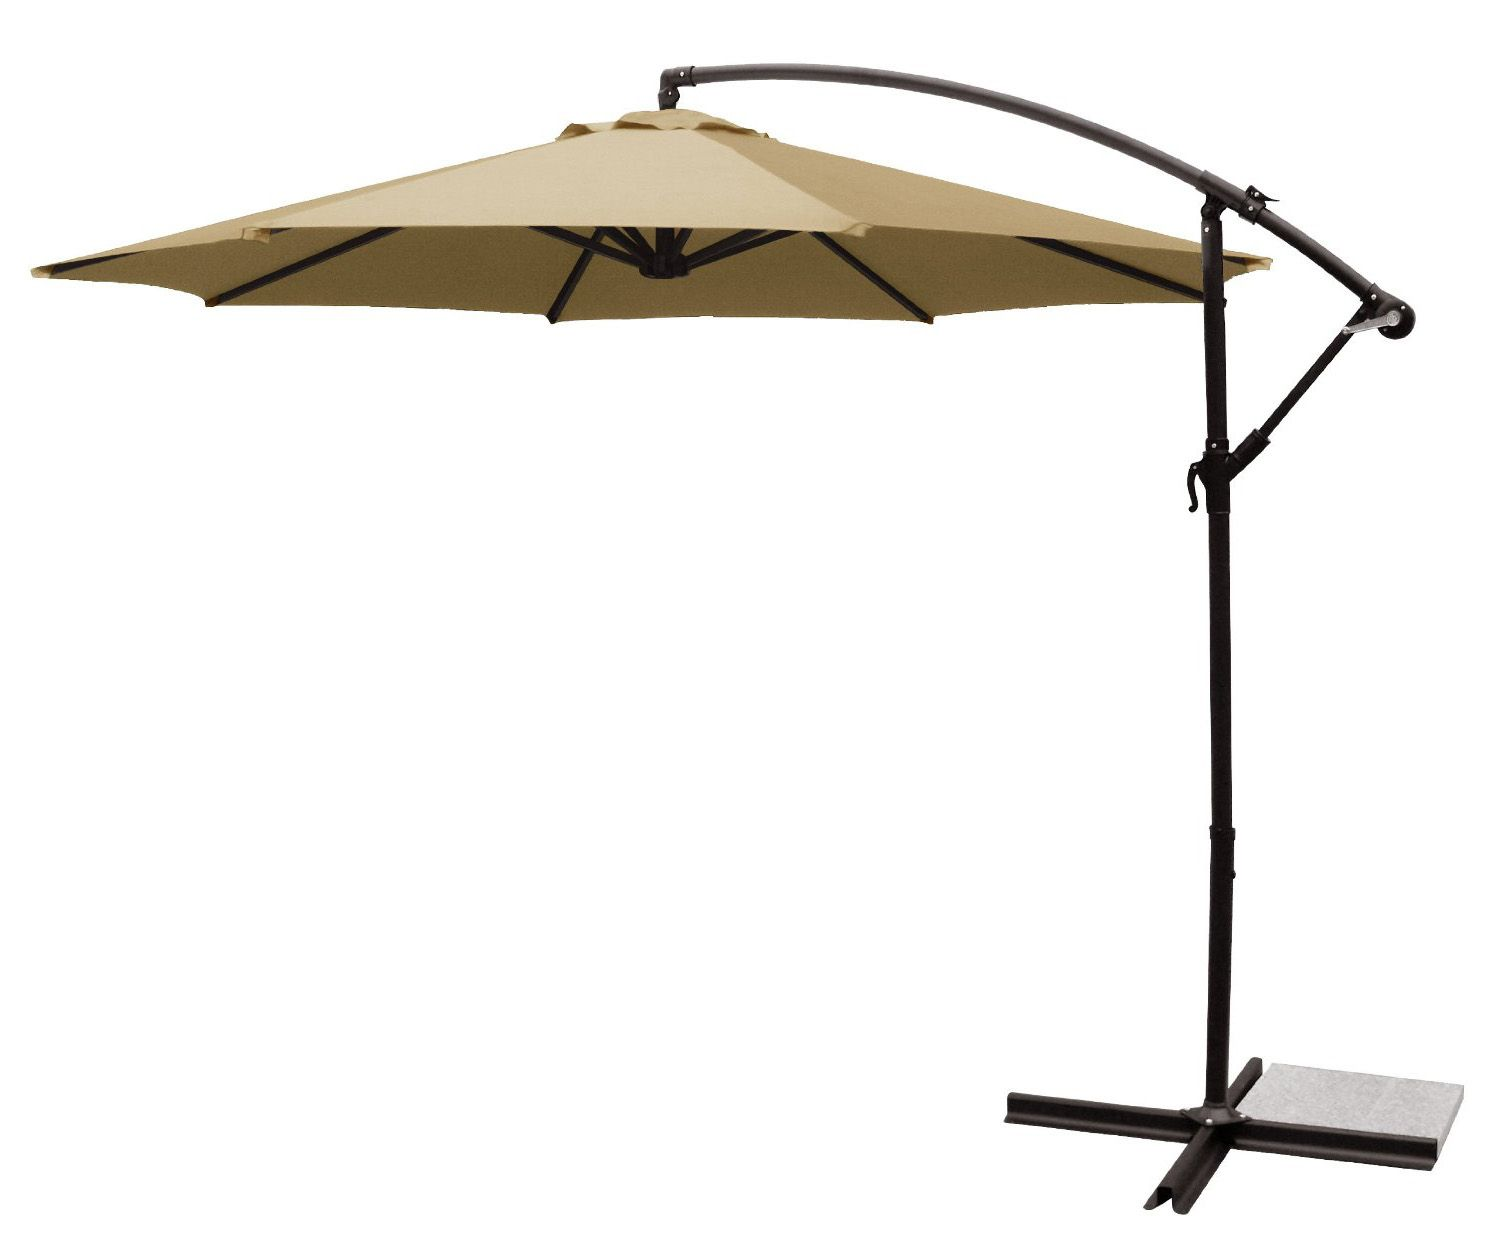 Patio Umbrellas Patio Umbrellas Lowes Patio Umbrellas Patio Umbrella